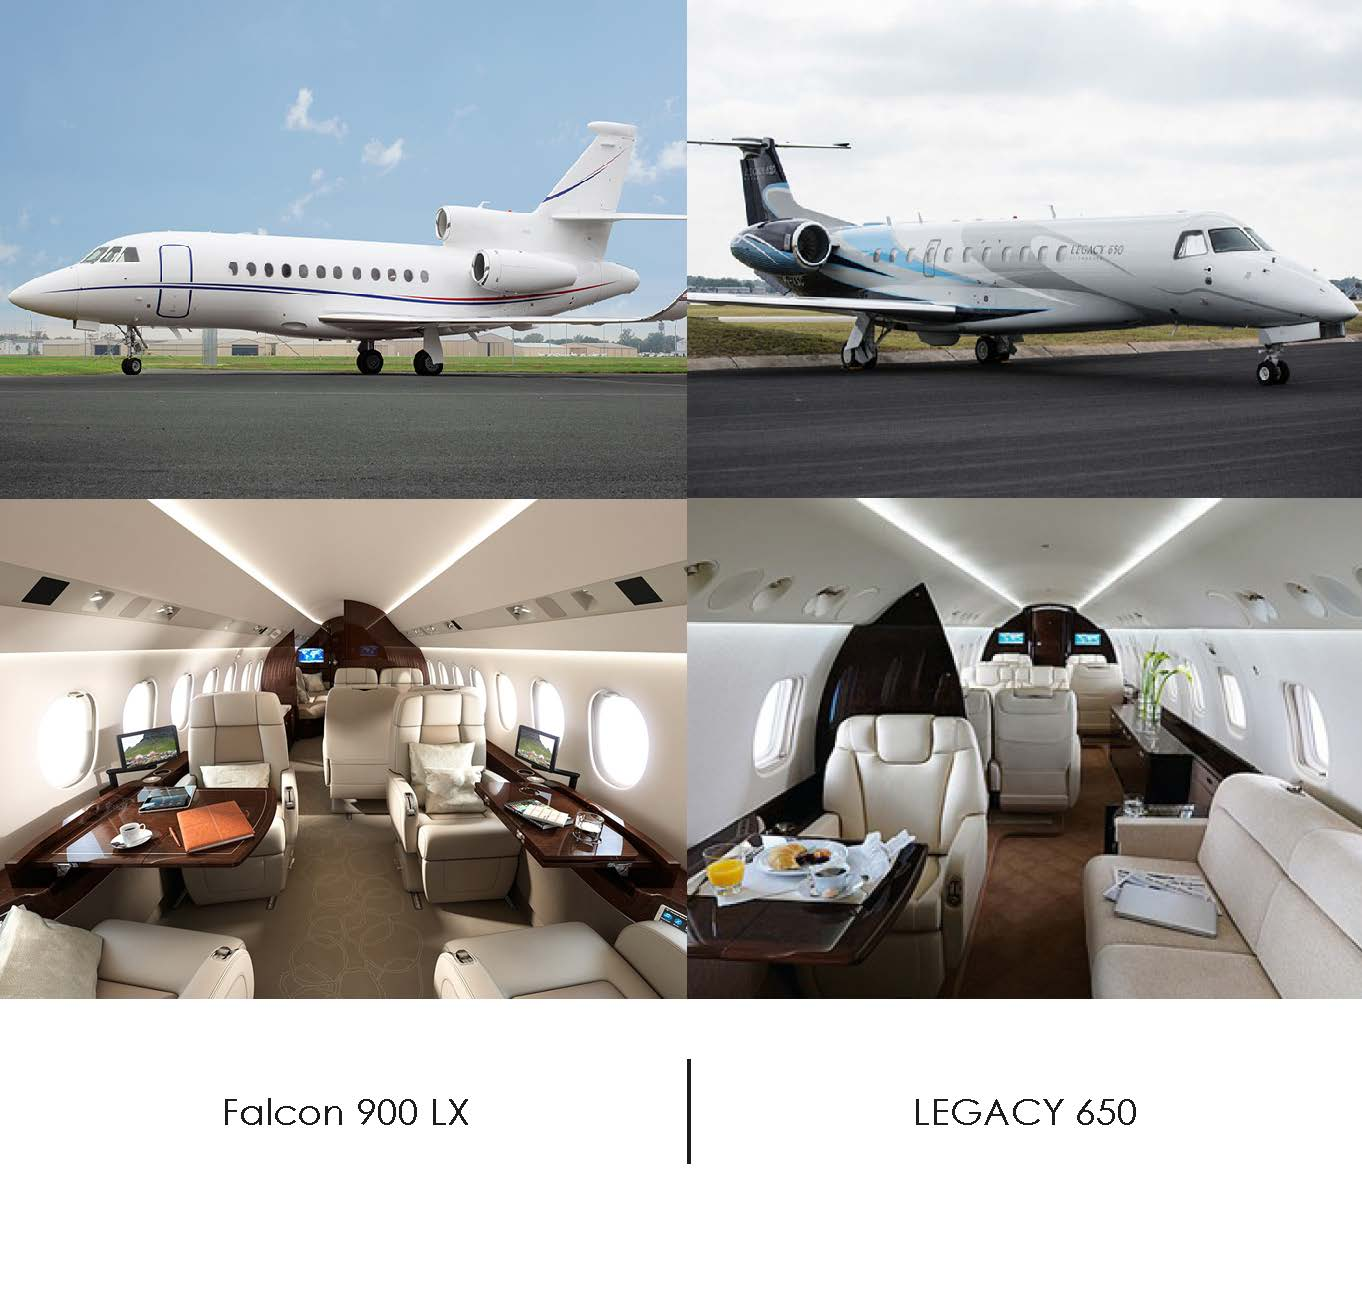 newsletterFALCON 900LX vs LEGACY 650 photo